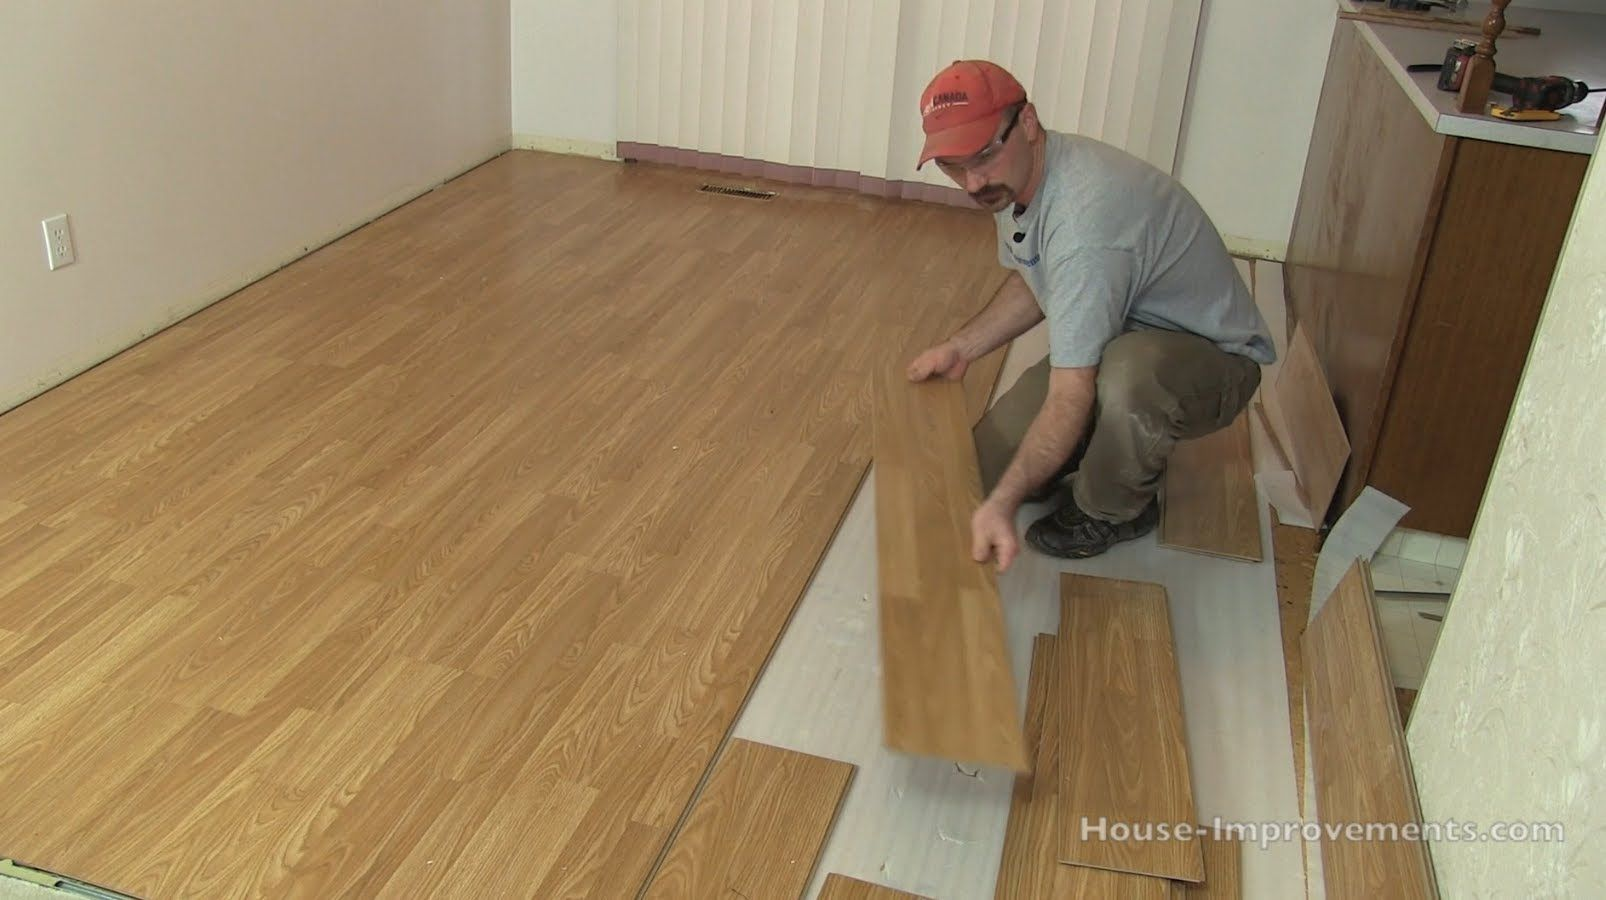 How to remove laminate flooring diy pinterest laminate how to remove laminate flooring dailygadgetfo Image collections